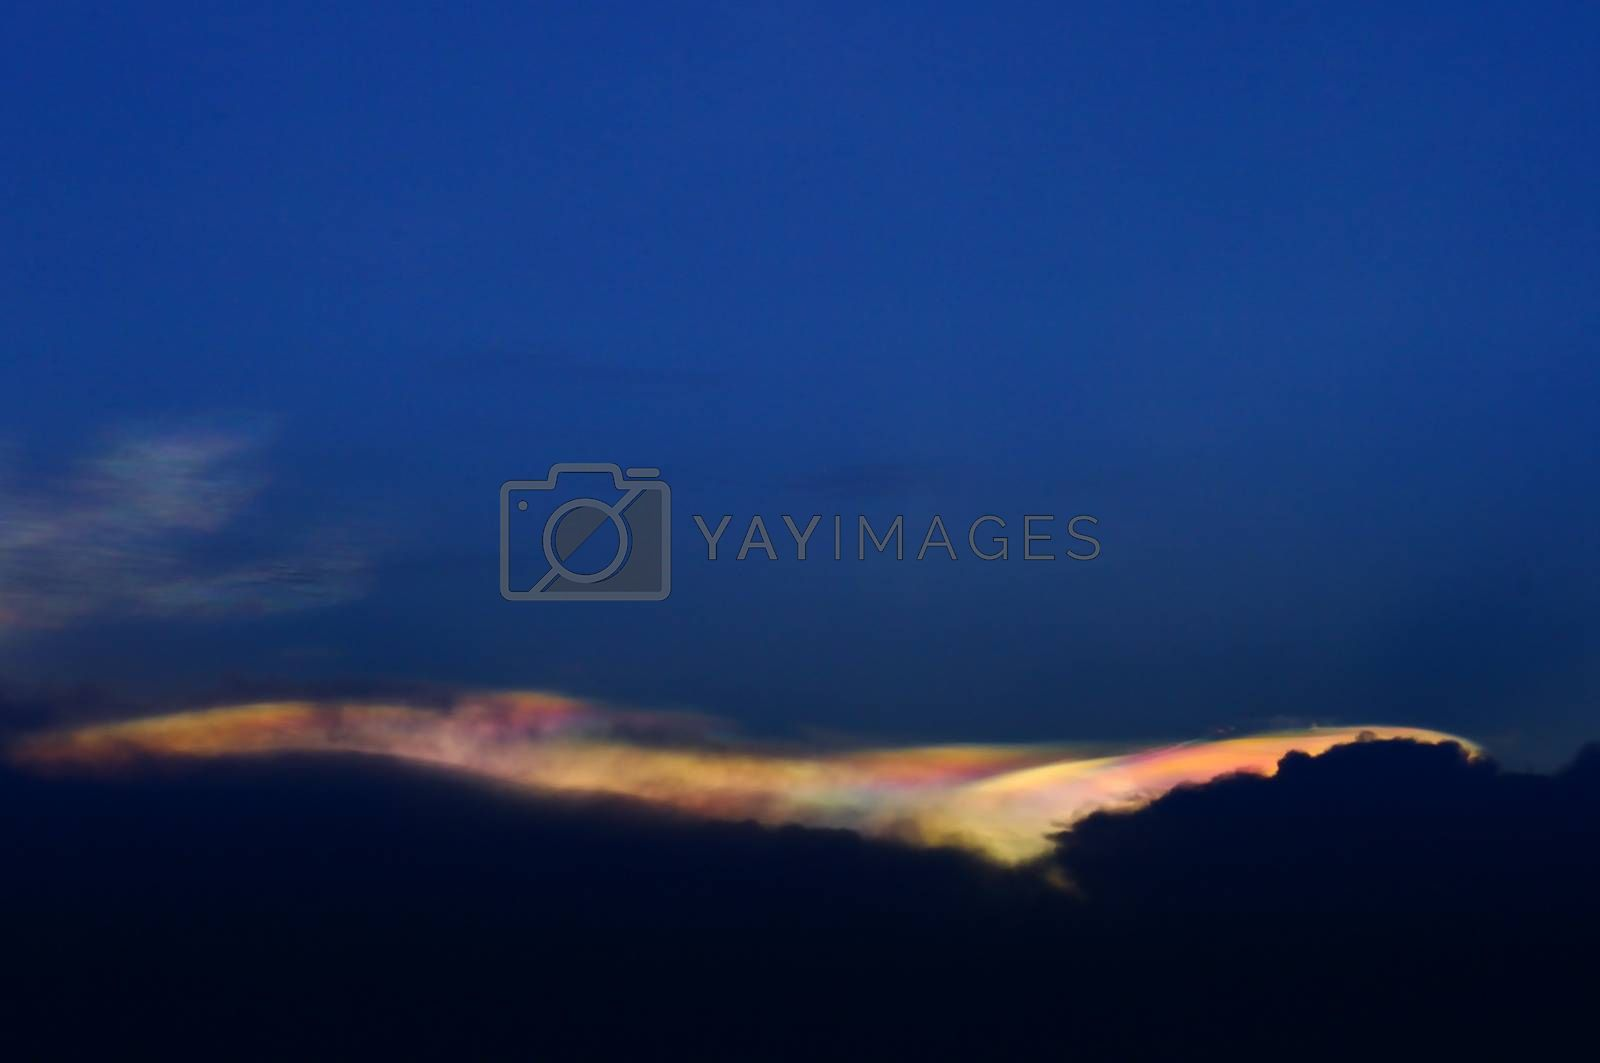 Royalty free image of Rainbow Clouds, Irisation by pixbox77